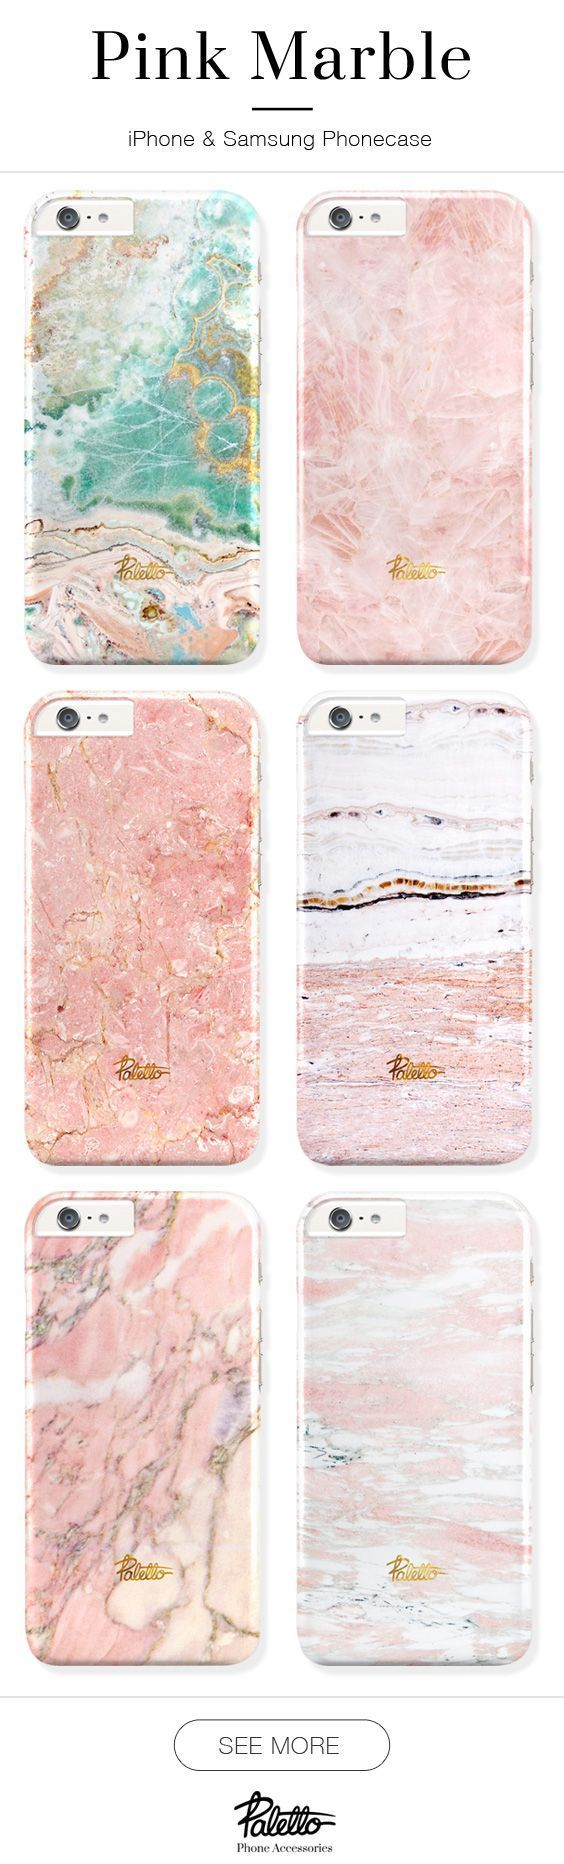 PINK marble phone case. Available for iPhone 6/6s, 6/6s plus, 5/5s/5c & Samsung galaxy S5, S6. Free shipping worldwide. #PhoneCase #iphone6cases,